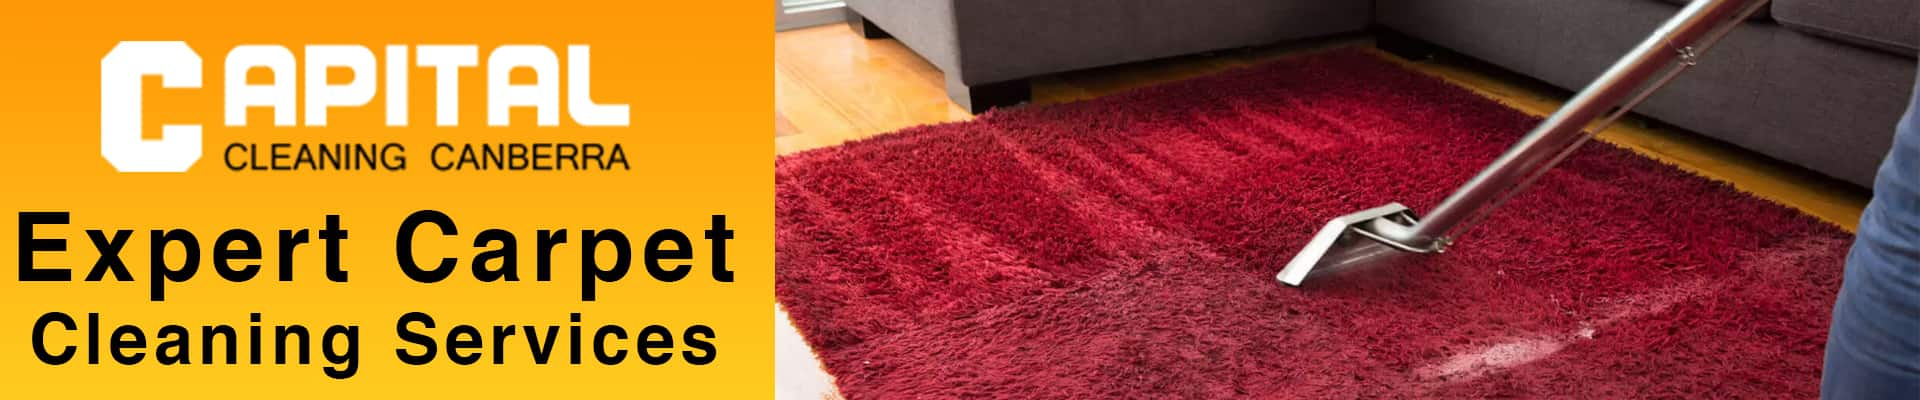 Expert Carpet Cleaning Services Boambolo